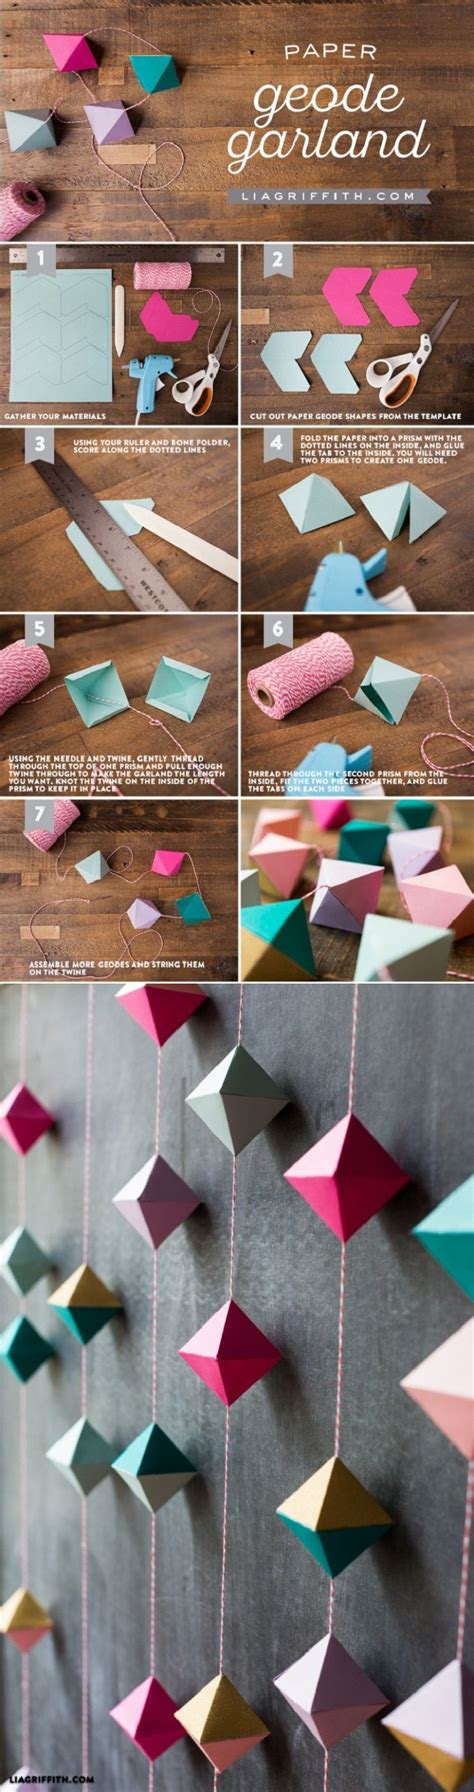 crafts you can do with paper diy paper geode garland what s an article about paper